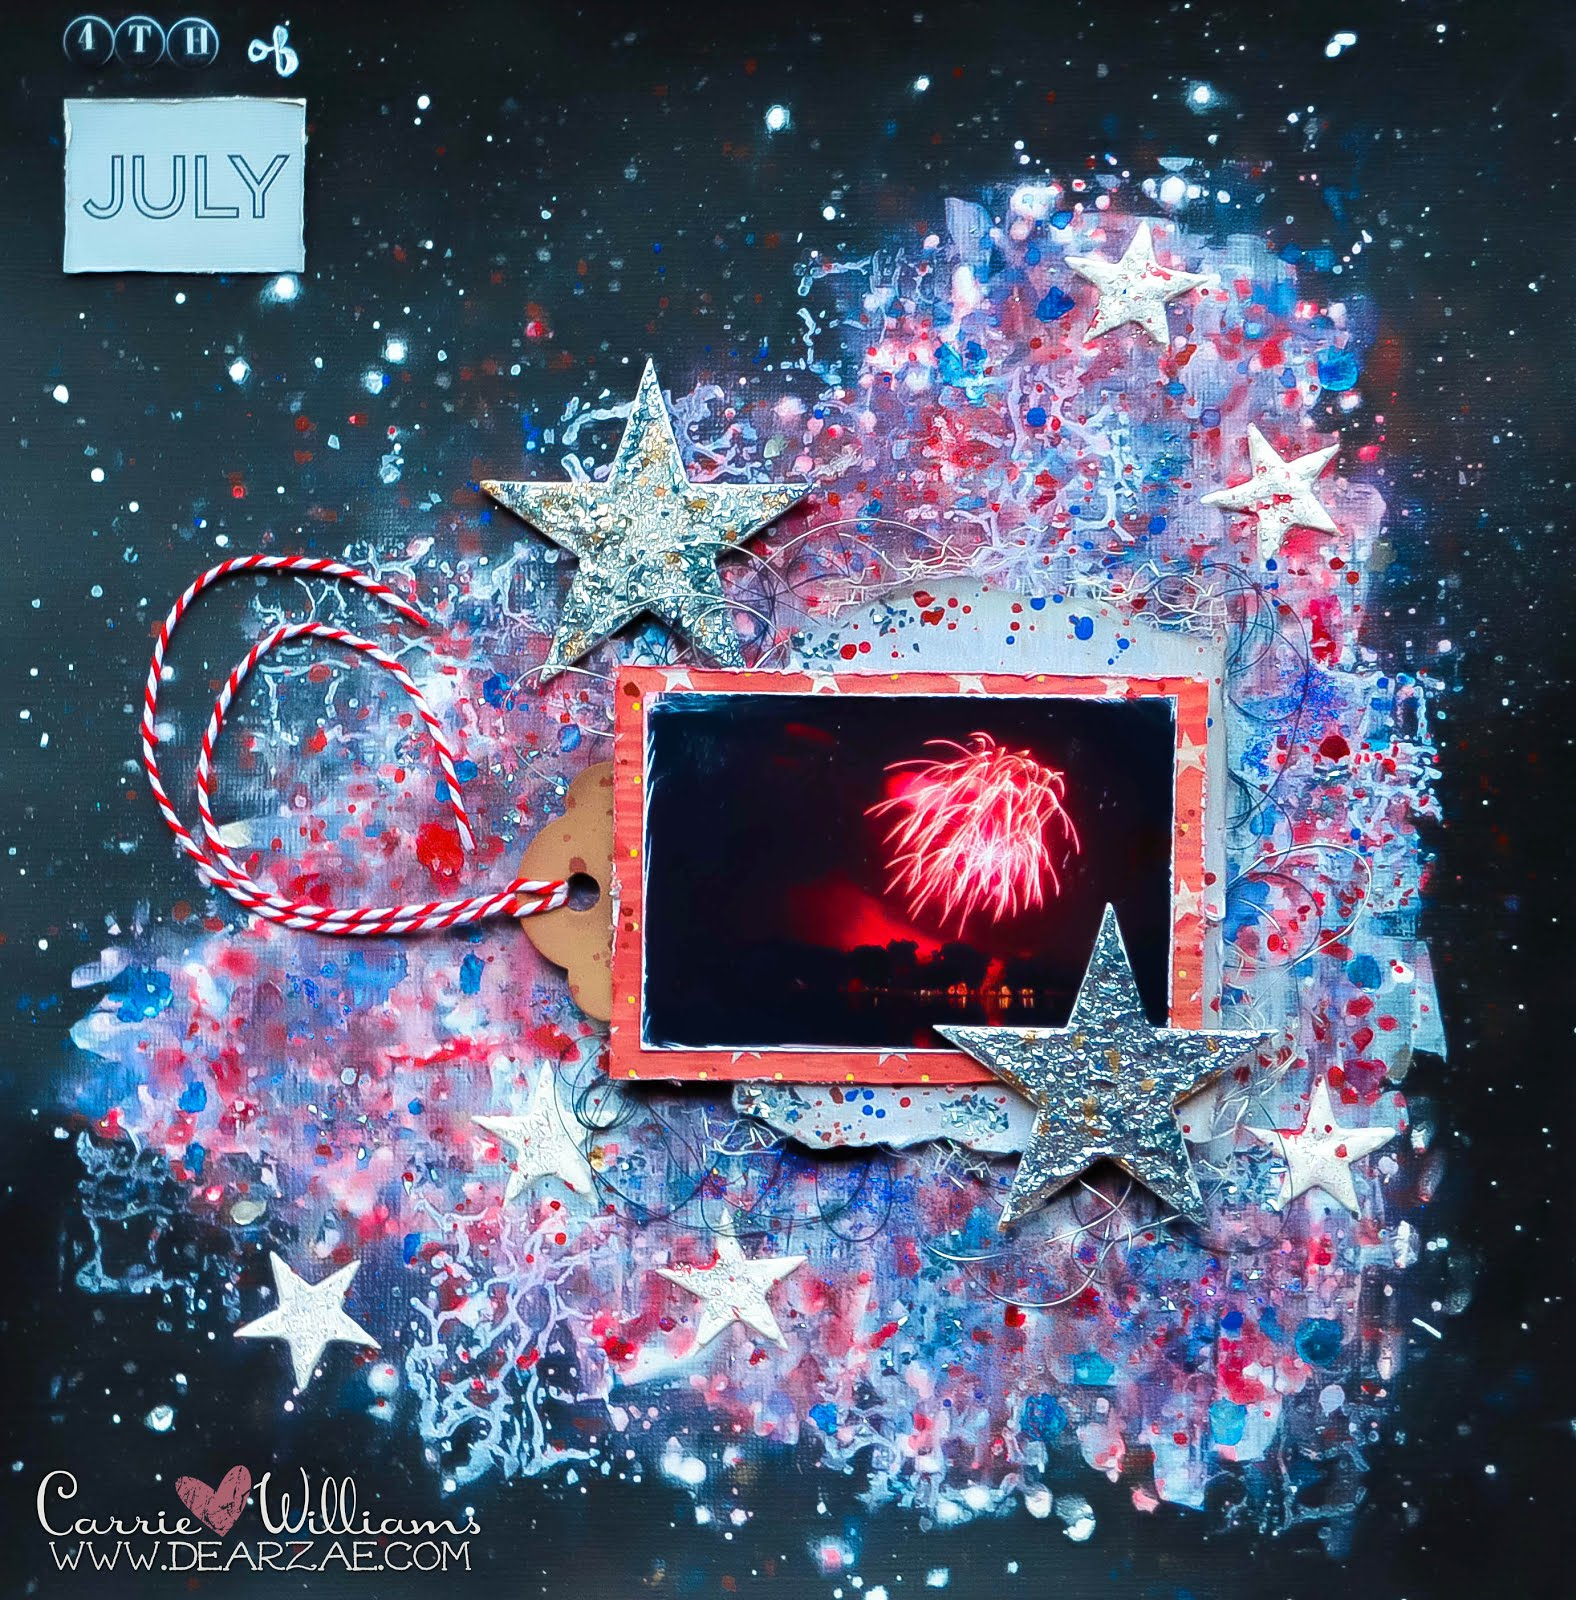 Fourth of July/Independence Day fireworks mixed media layout in red, white, and blue using texture paste and chipboard stars with encrusted jewel technique, glitter, mica fragments, bakers twine, texture paste and stenciling.